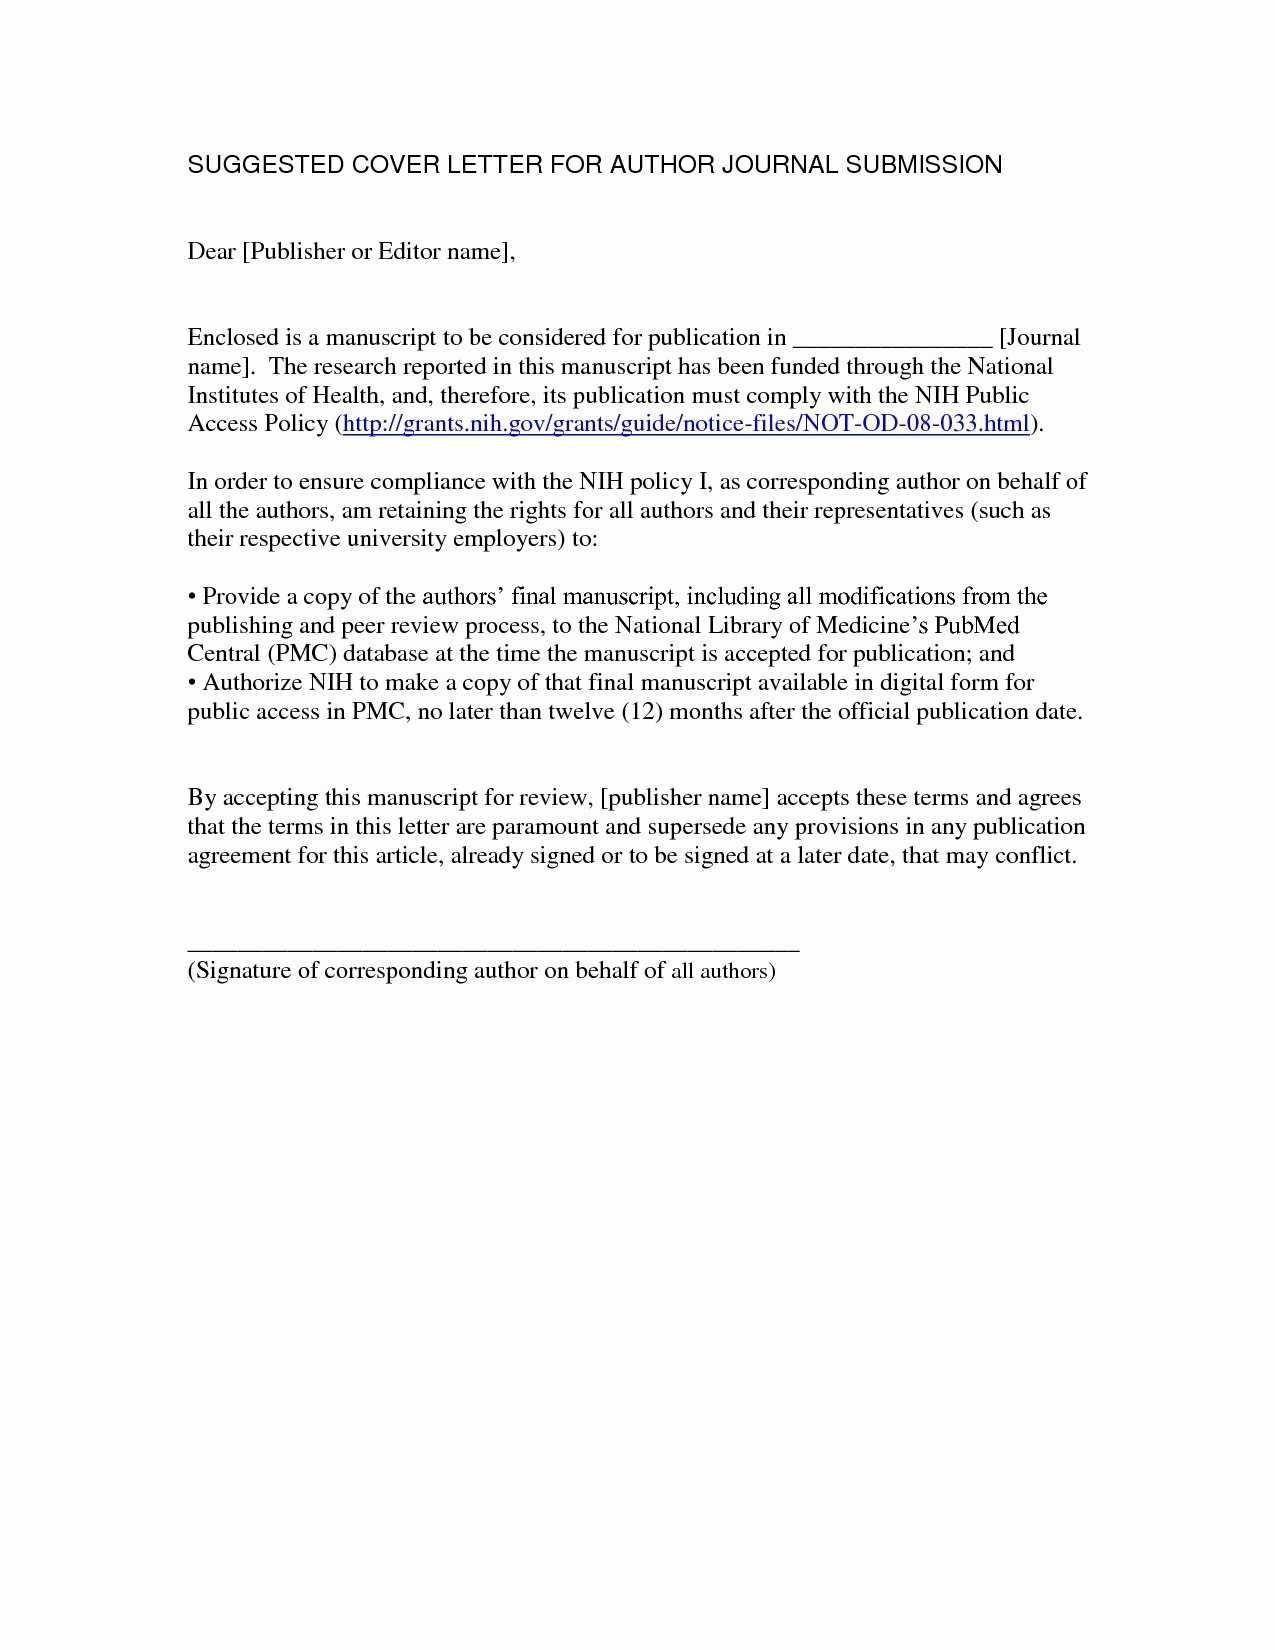 Hair Stylist Contract Template Inspirational Piecework Agreement For Piecework Agreement Template